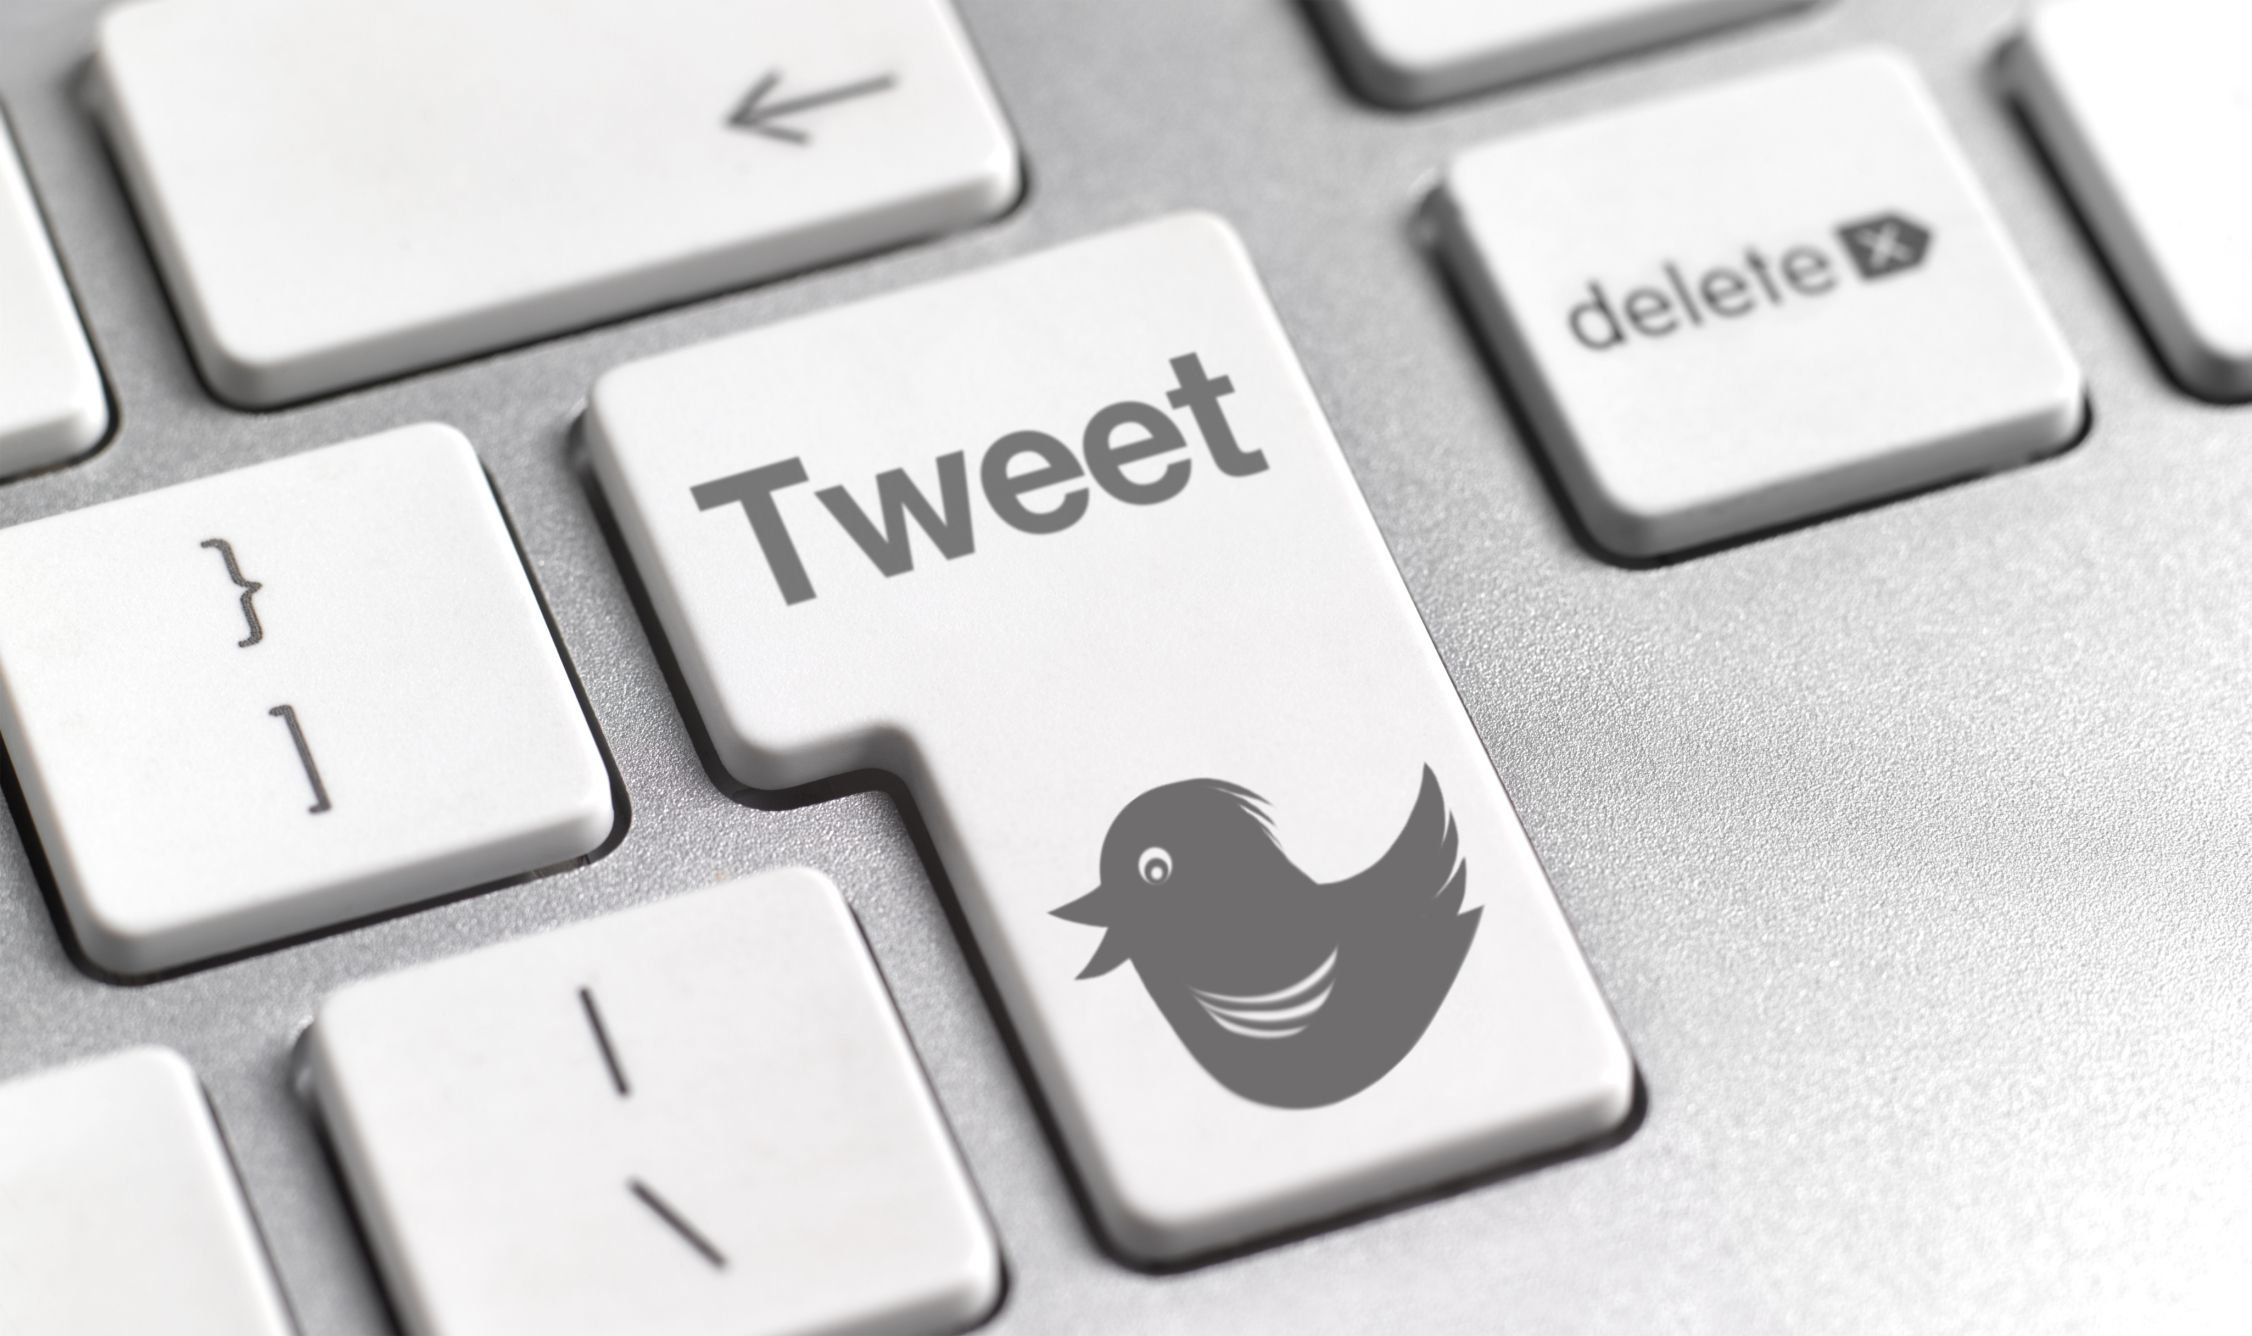 New to twitter get started with this cheat sheet twitter tweet button on keyboard biocorpaavc Image collections